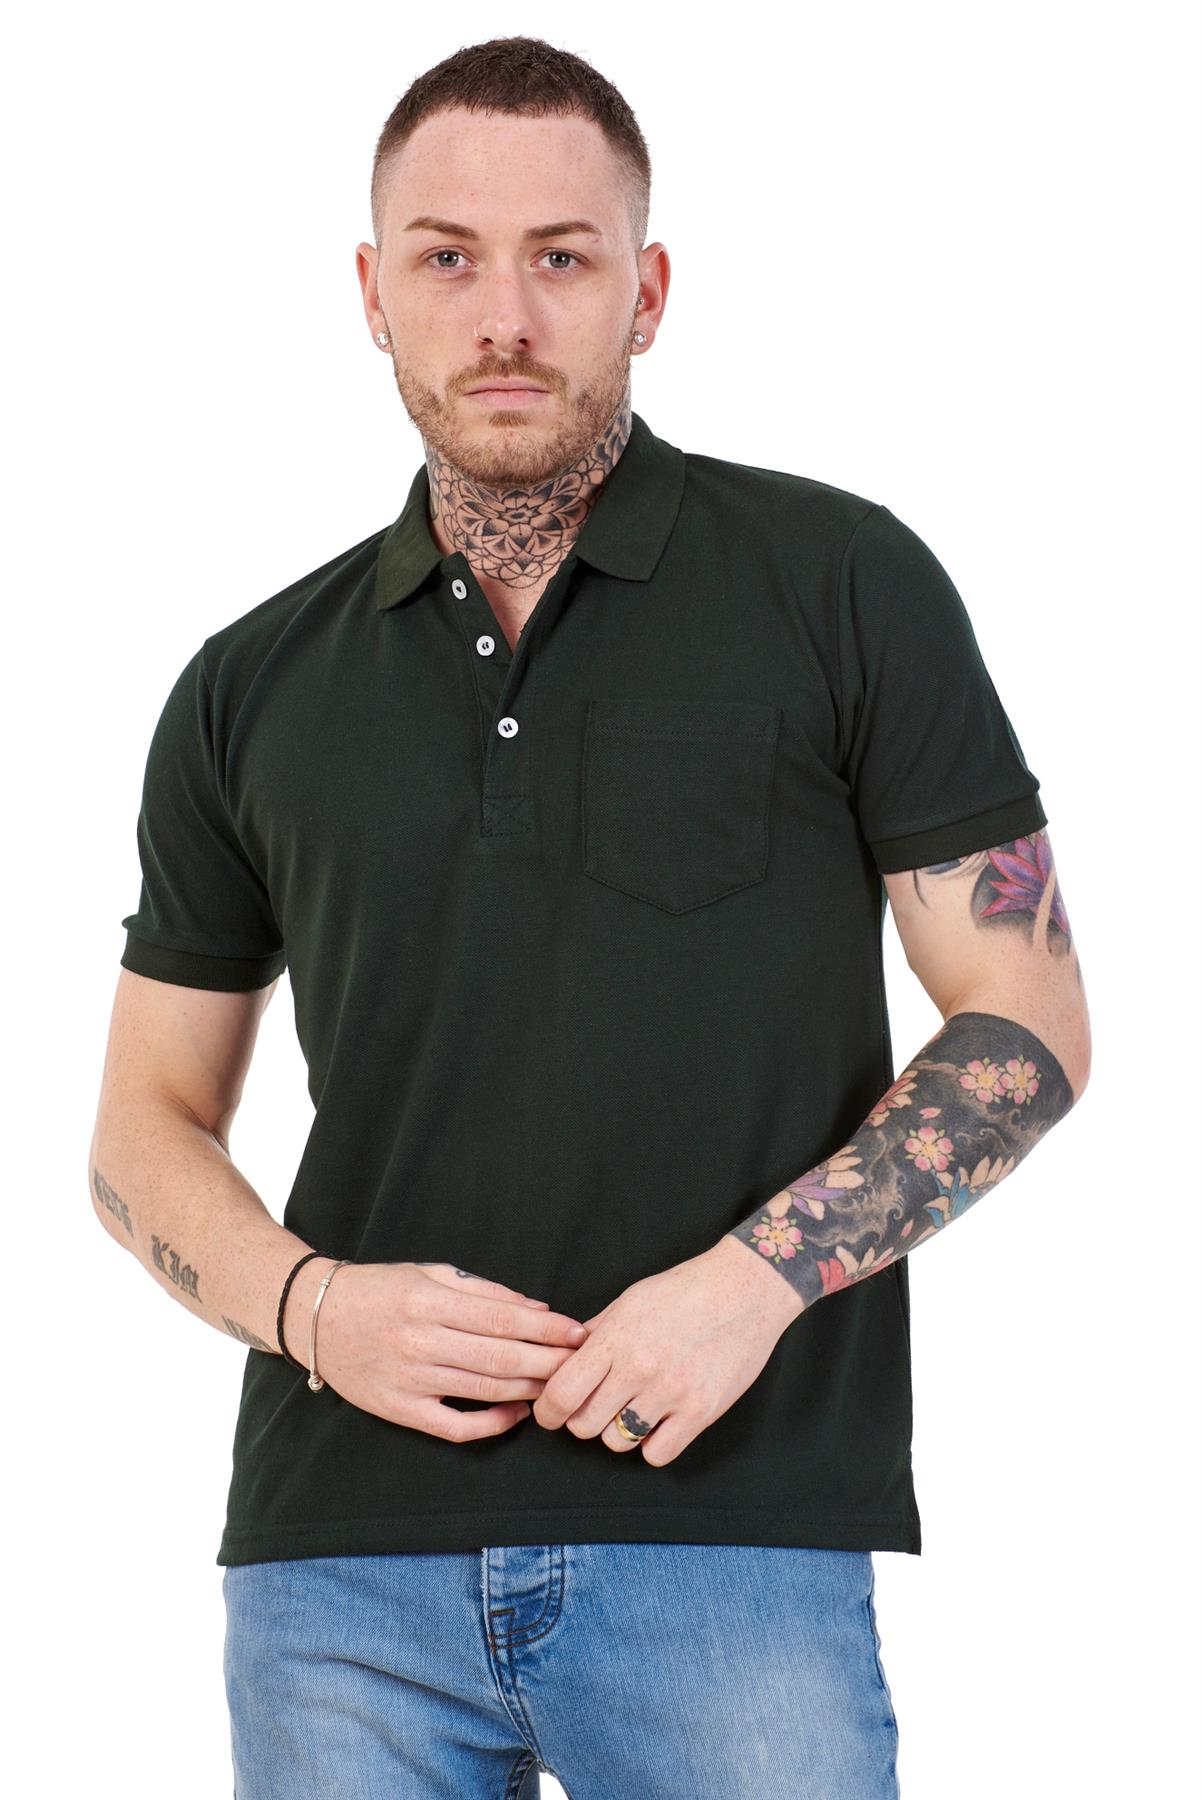 Mens-Cotton-T-Shirts-Regular-fit-Plain-Polo-Pocket-Casual-Formal-Shirt-Top-M-XXL thumbnail 15